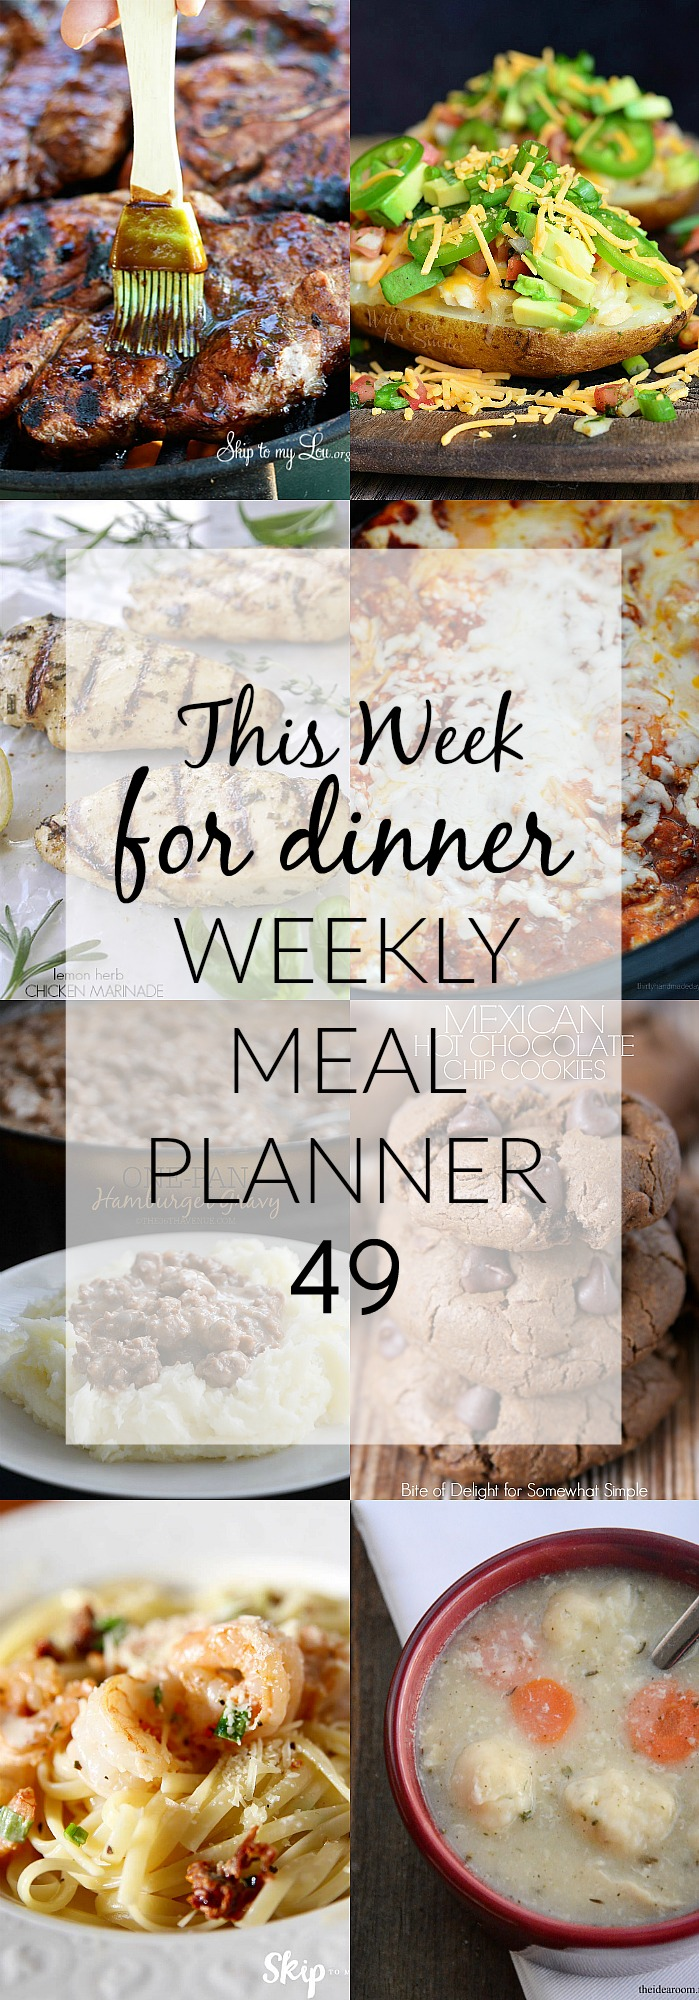 Slow Cooker Lasagna, Fiesta Chicken Baked Potato, Lemon Herb Chicken Marinade, Chicken and Dumplings, Pork Steak and Balsamic BBQ Sauce, One Pan Hamburger Gravy, Creamy Cajun Shrimp Pasta, and Mexican Hot Chocolate Chip Cookies for dessert.